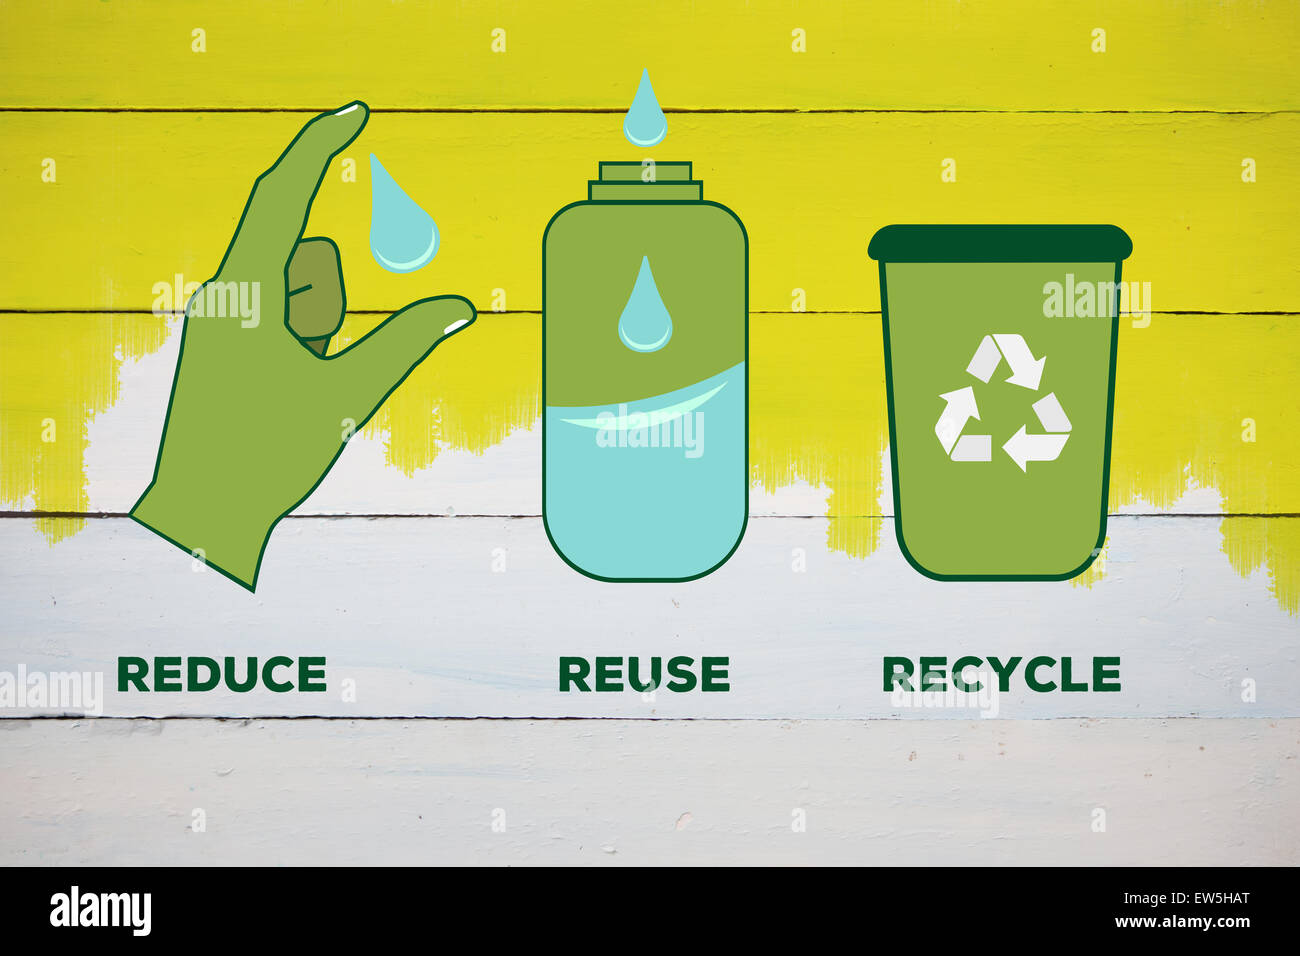 Reduce Reuse Recycle Stock Photos Amp Reduce Reuse Recycle Stock Images